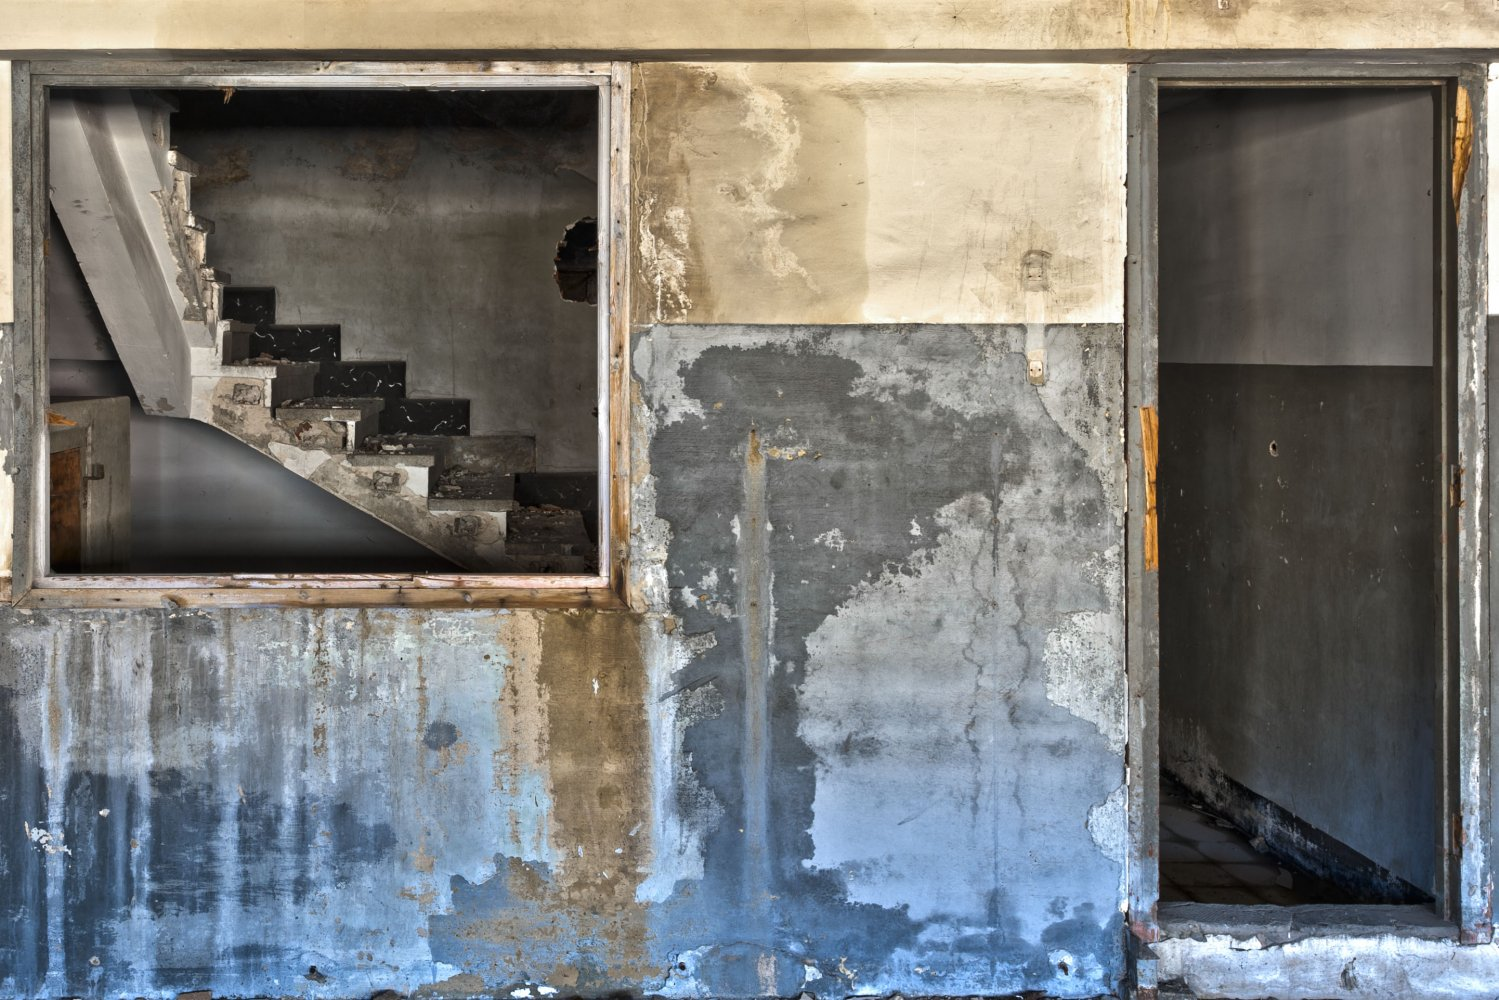 she ran upstairs - ABANDONMENTS - cesar azcarate photography, galleries, abandonments